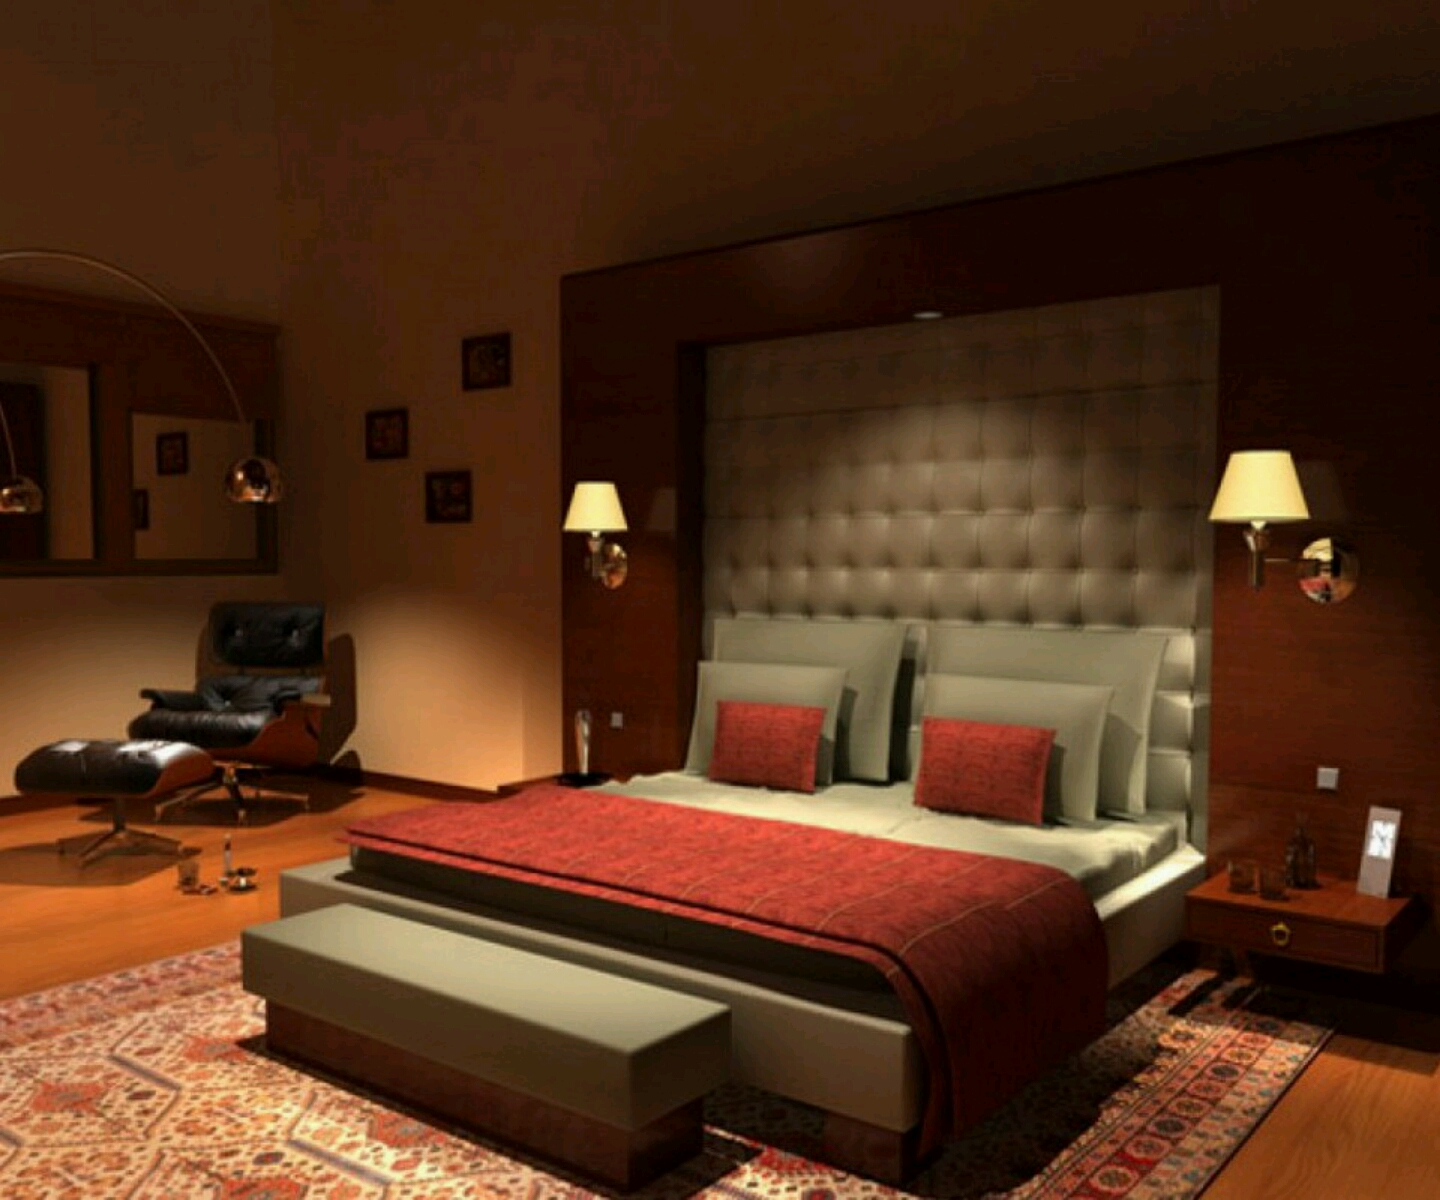 foundation dezin decor 7 awesome bed ideas for mater bedroom rh foundationdezin blogspot com  awesome canopy bed ideas